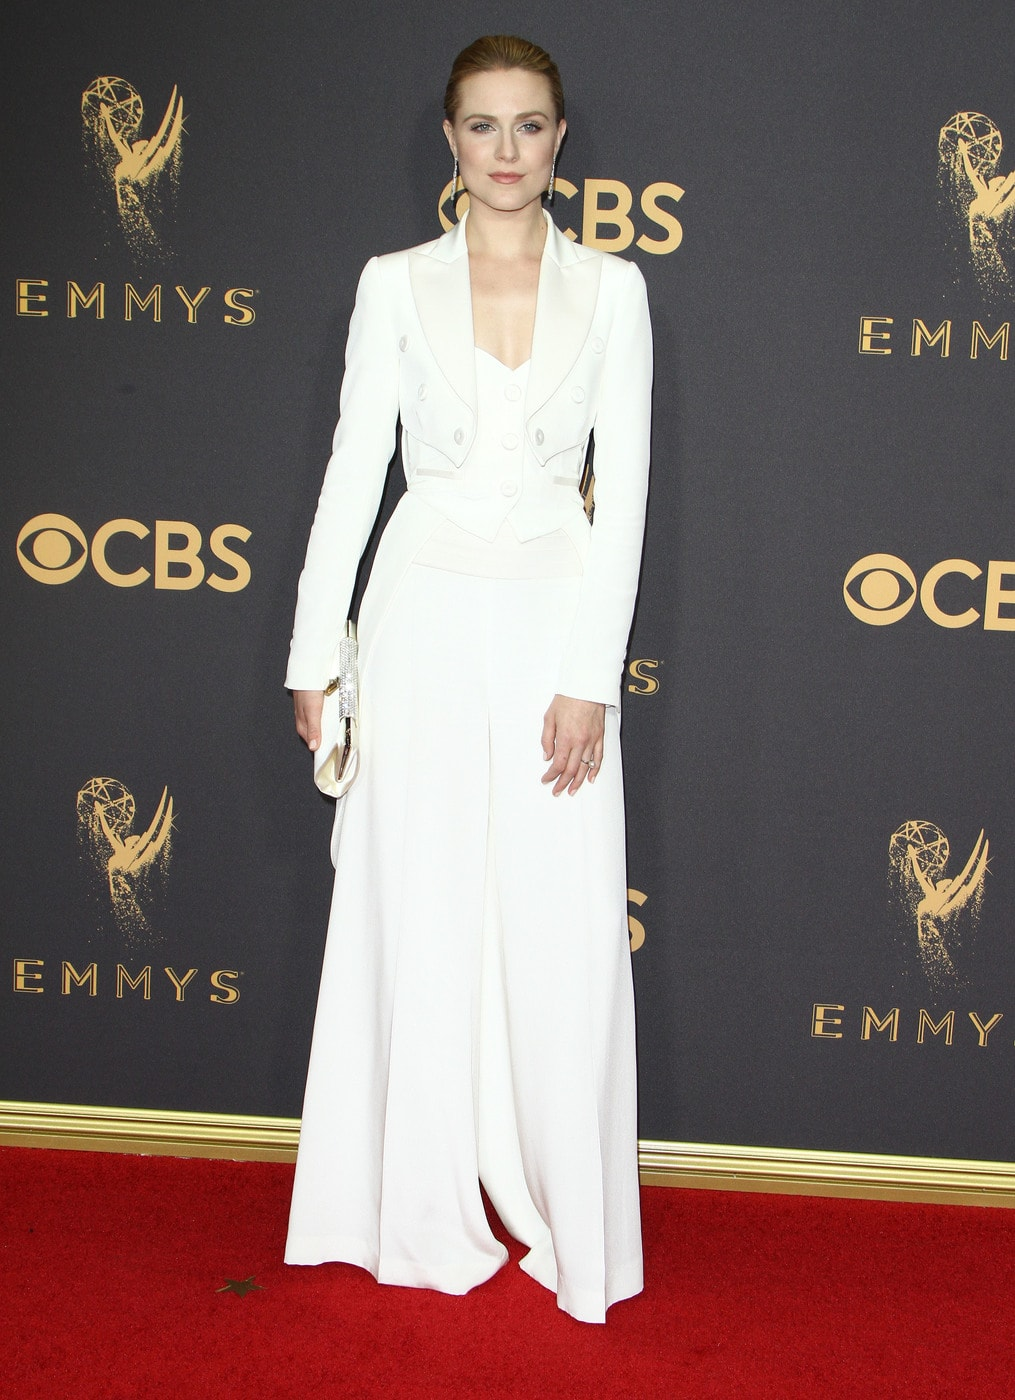 Evan Rachel Wood in Moschino at the 2017 Emmys